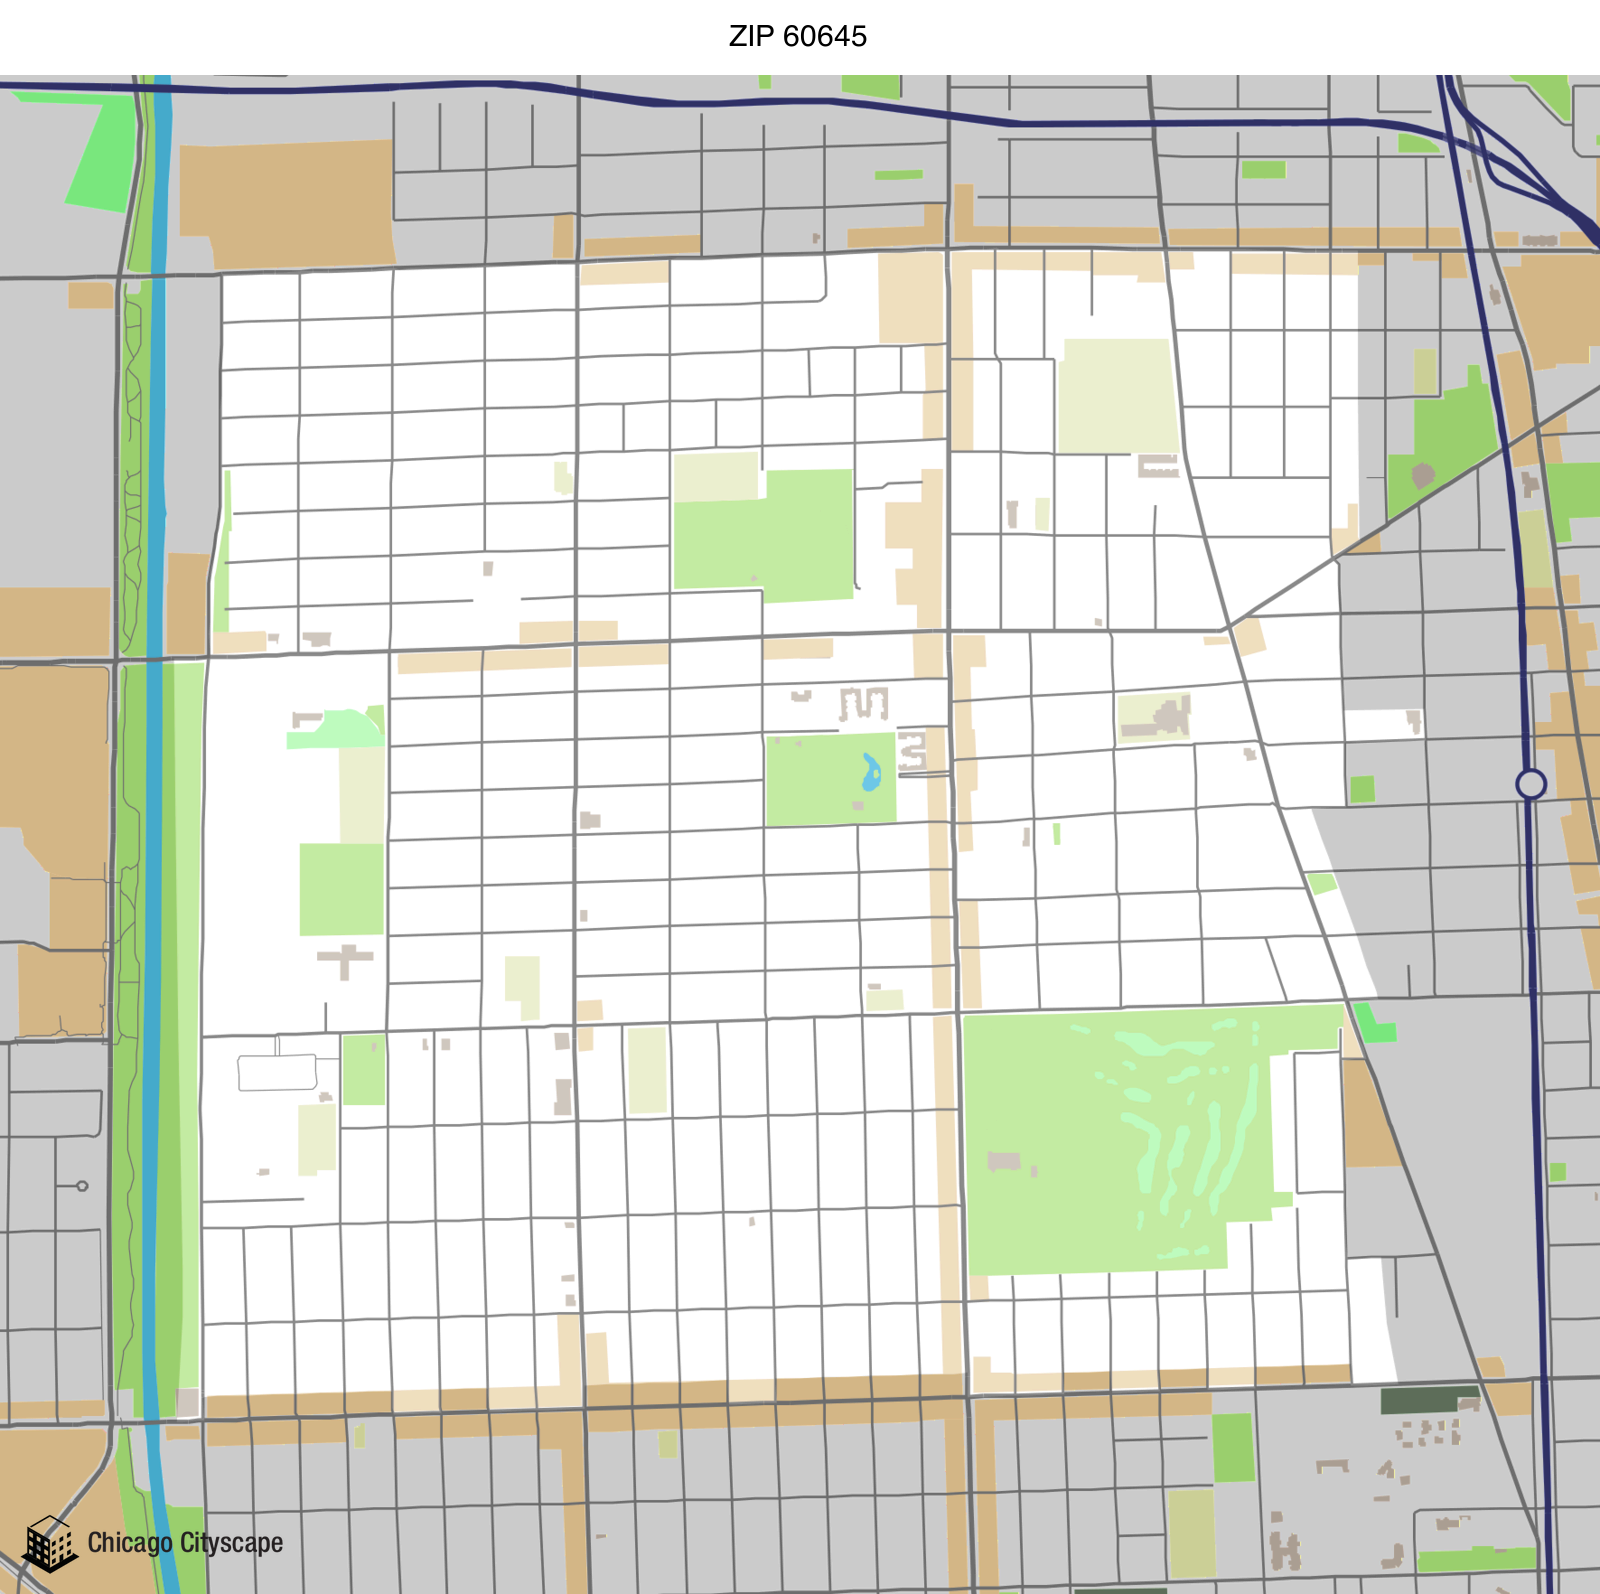 Map of building projects properties and businesses in 60645 ZIP Code